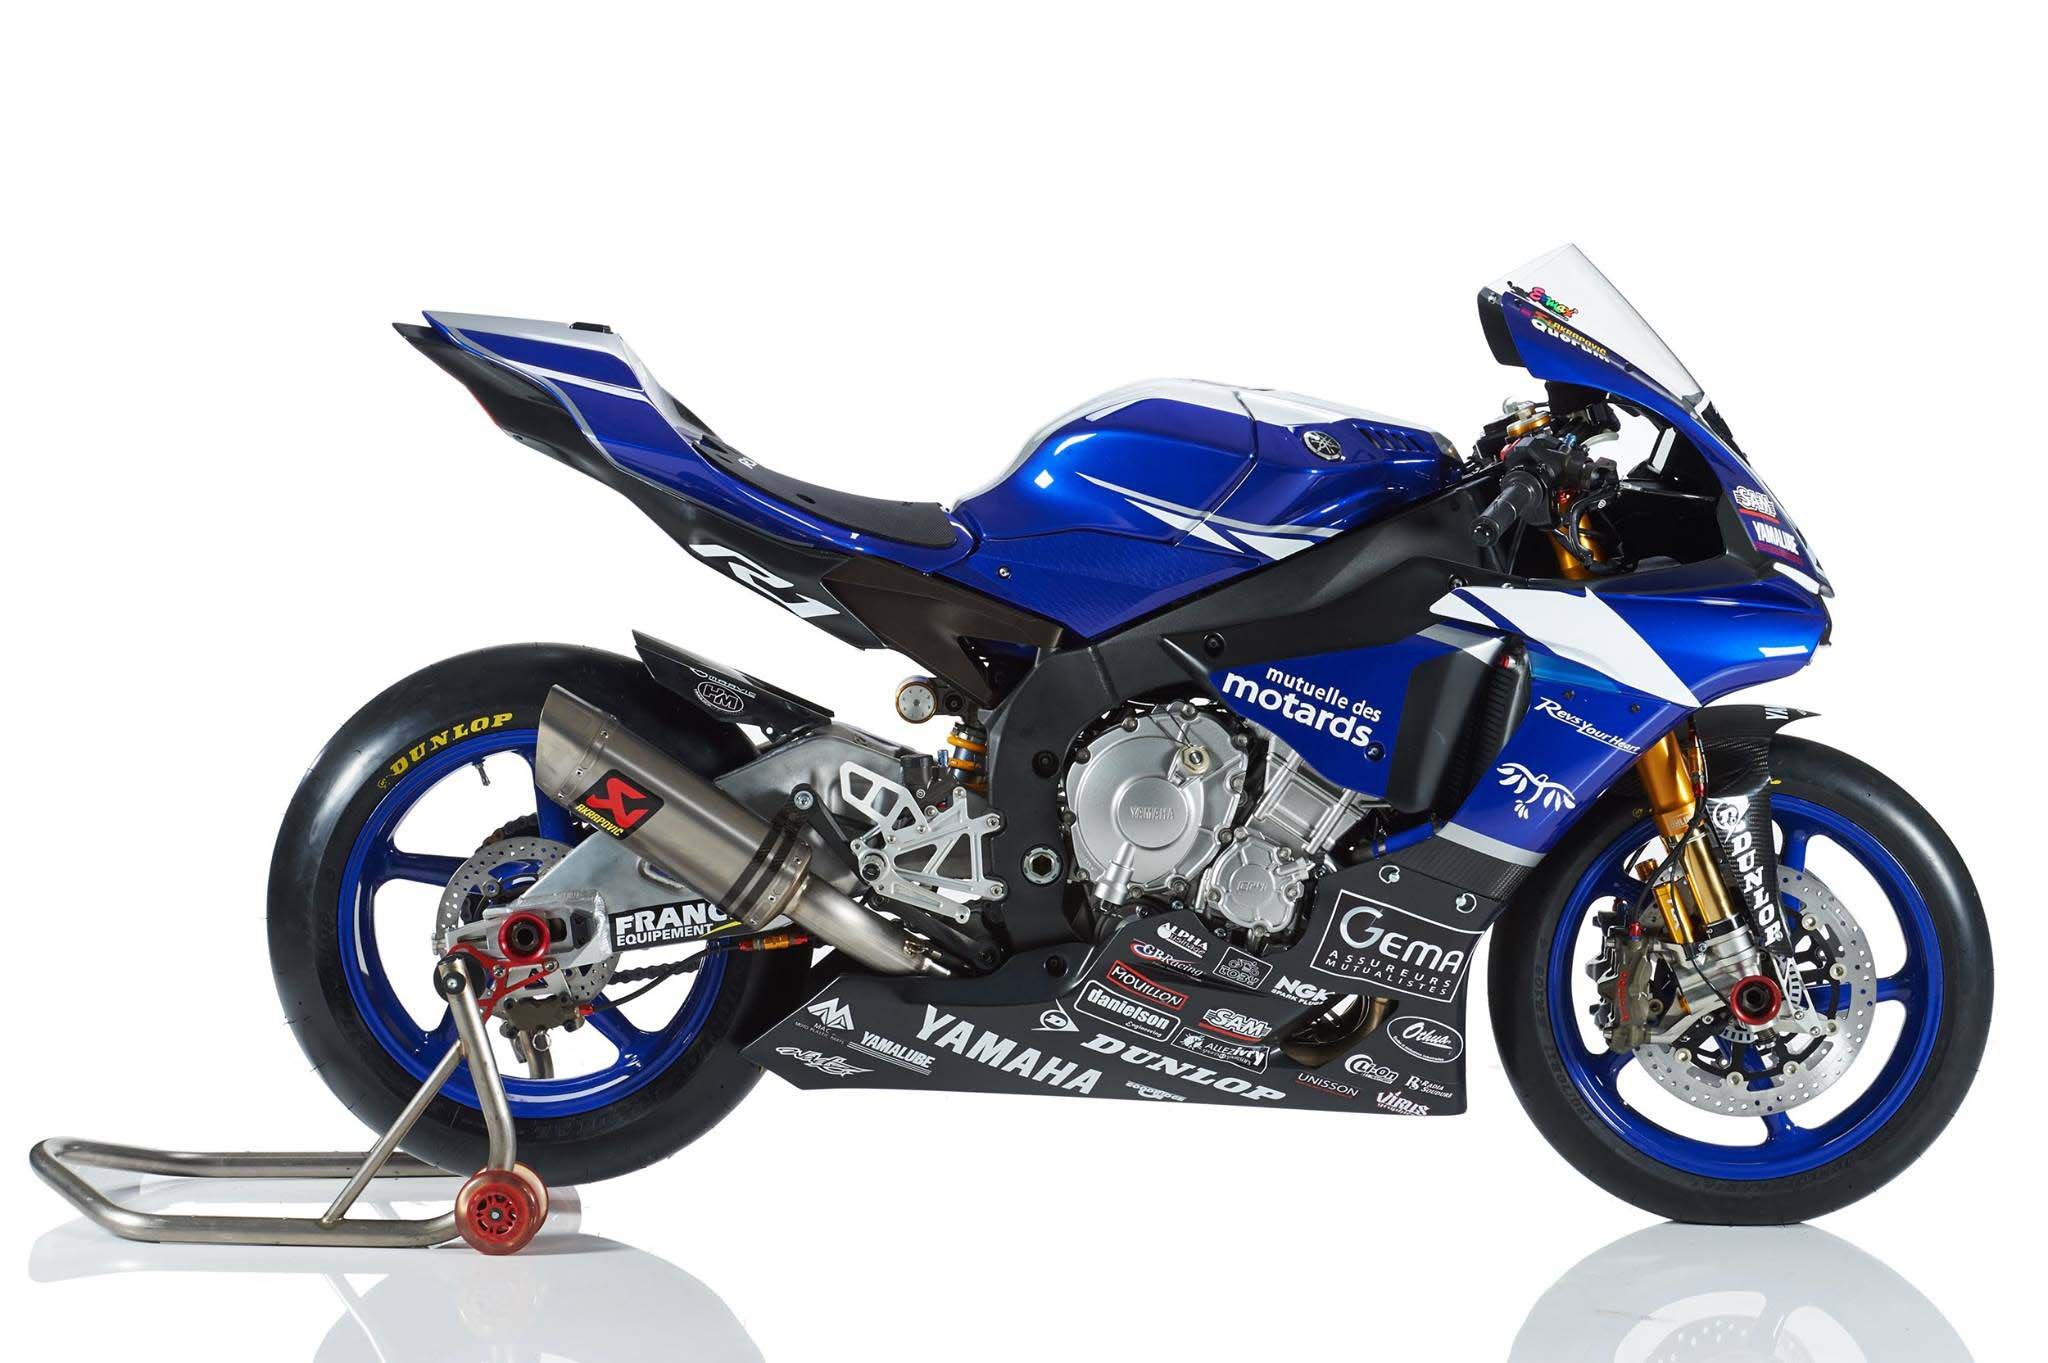 yamaha r1 blue bike - photo #42